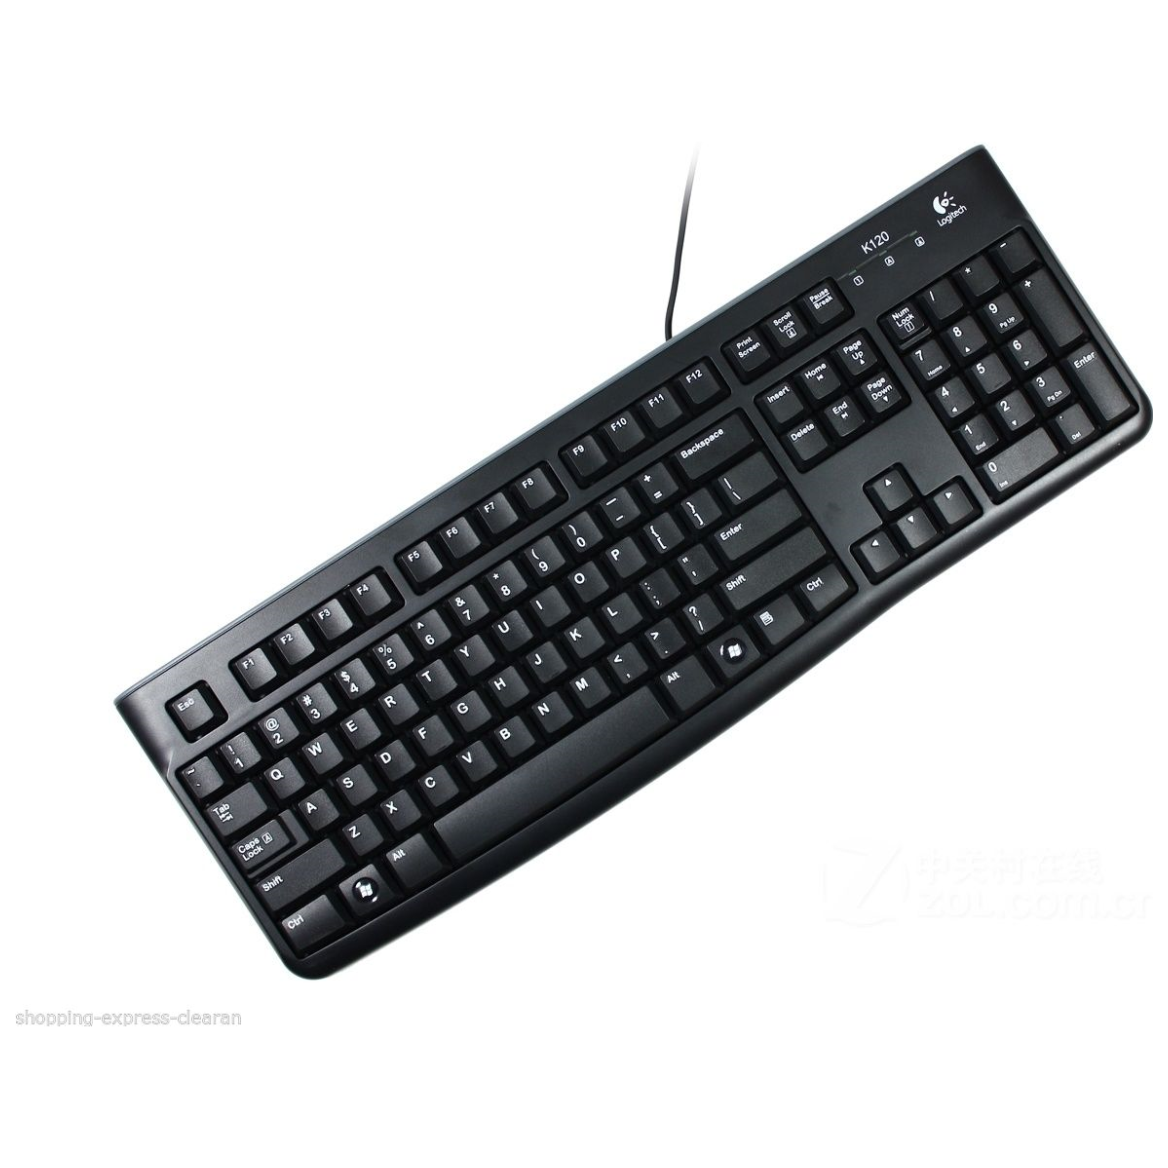 Wired Keyboard Logitech : logitech k120 wired keyboard 920 002582 ple computers online australia ~ Vivirlamusica.com Haus und Dekorationen